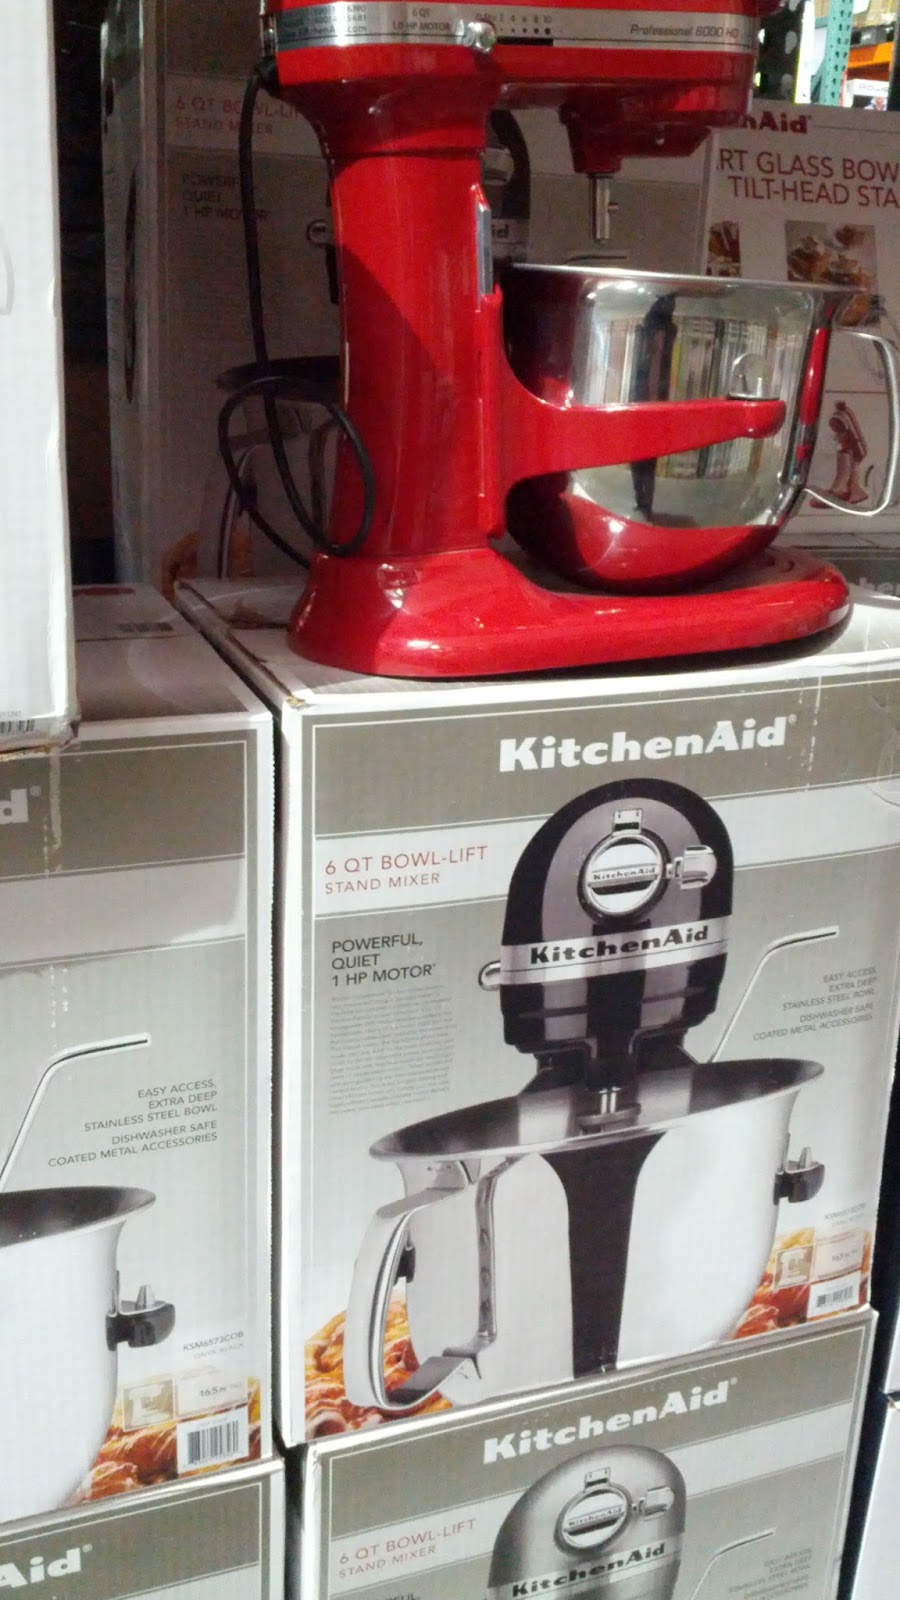 KitchenAid KSM6573COB 6 qt Stand Mixer | Costco Weekender on costco coffee, costco home, costco braun mixer, costco rice, costco vitamix, costco electronics, costco indoor rugs, costco gift cards, costco hand mixer, costco bosch mixer, costco thanksgiving, costco appliances, costco cookware, costco juicer, costco kitchens, costco halloween, costco chocolate, costco meat slicer, costco chicken, costco beef,